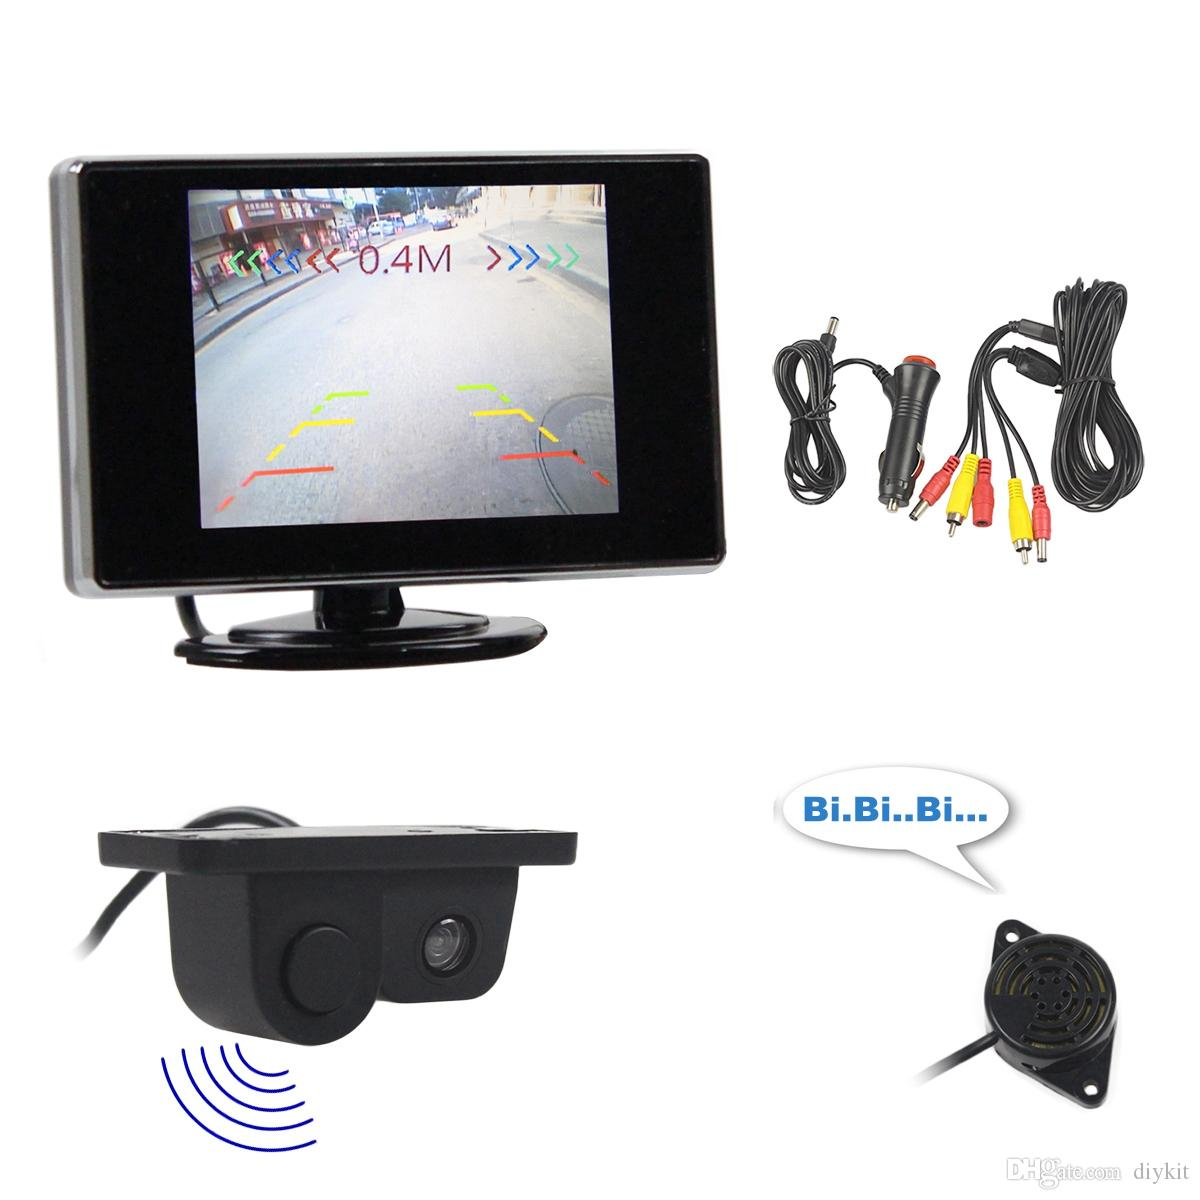 DIYKIT Wired 3.5 inch TFT LCD Rear View Monitor Car Monitor + Video Parking Radar Black Sensor Car Camera Parking Accessories